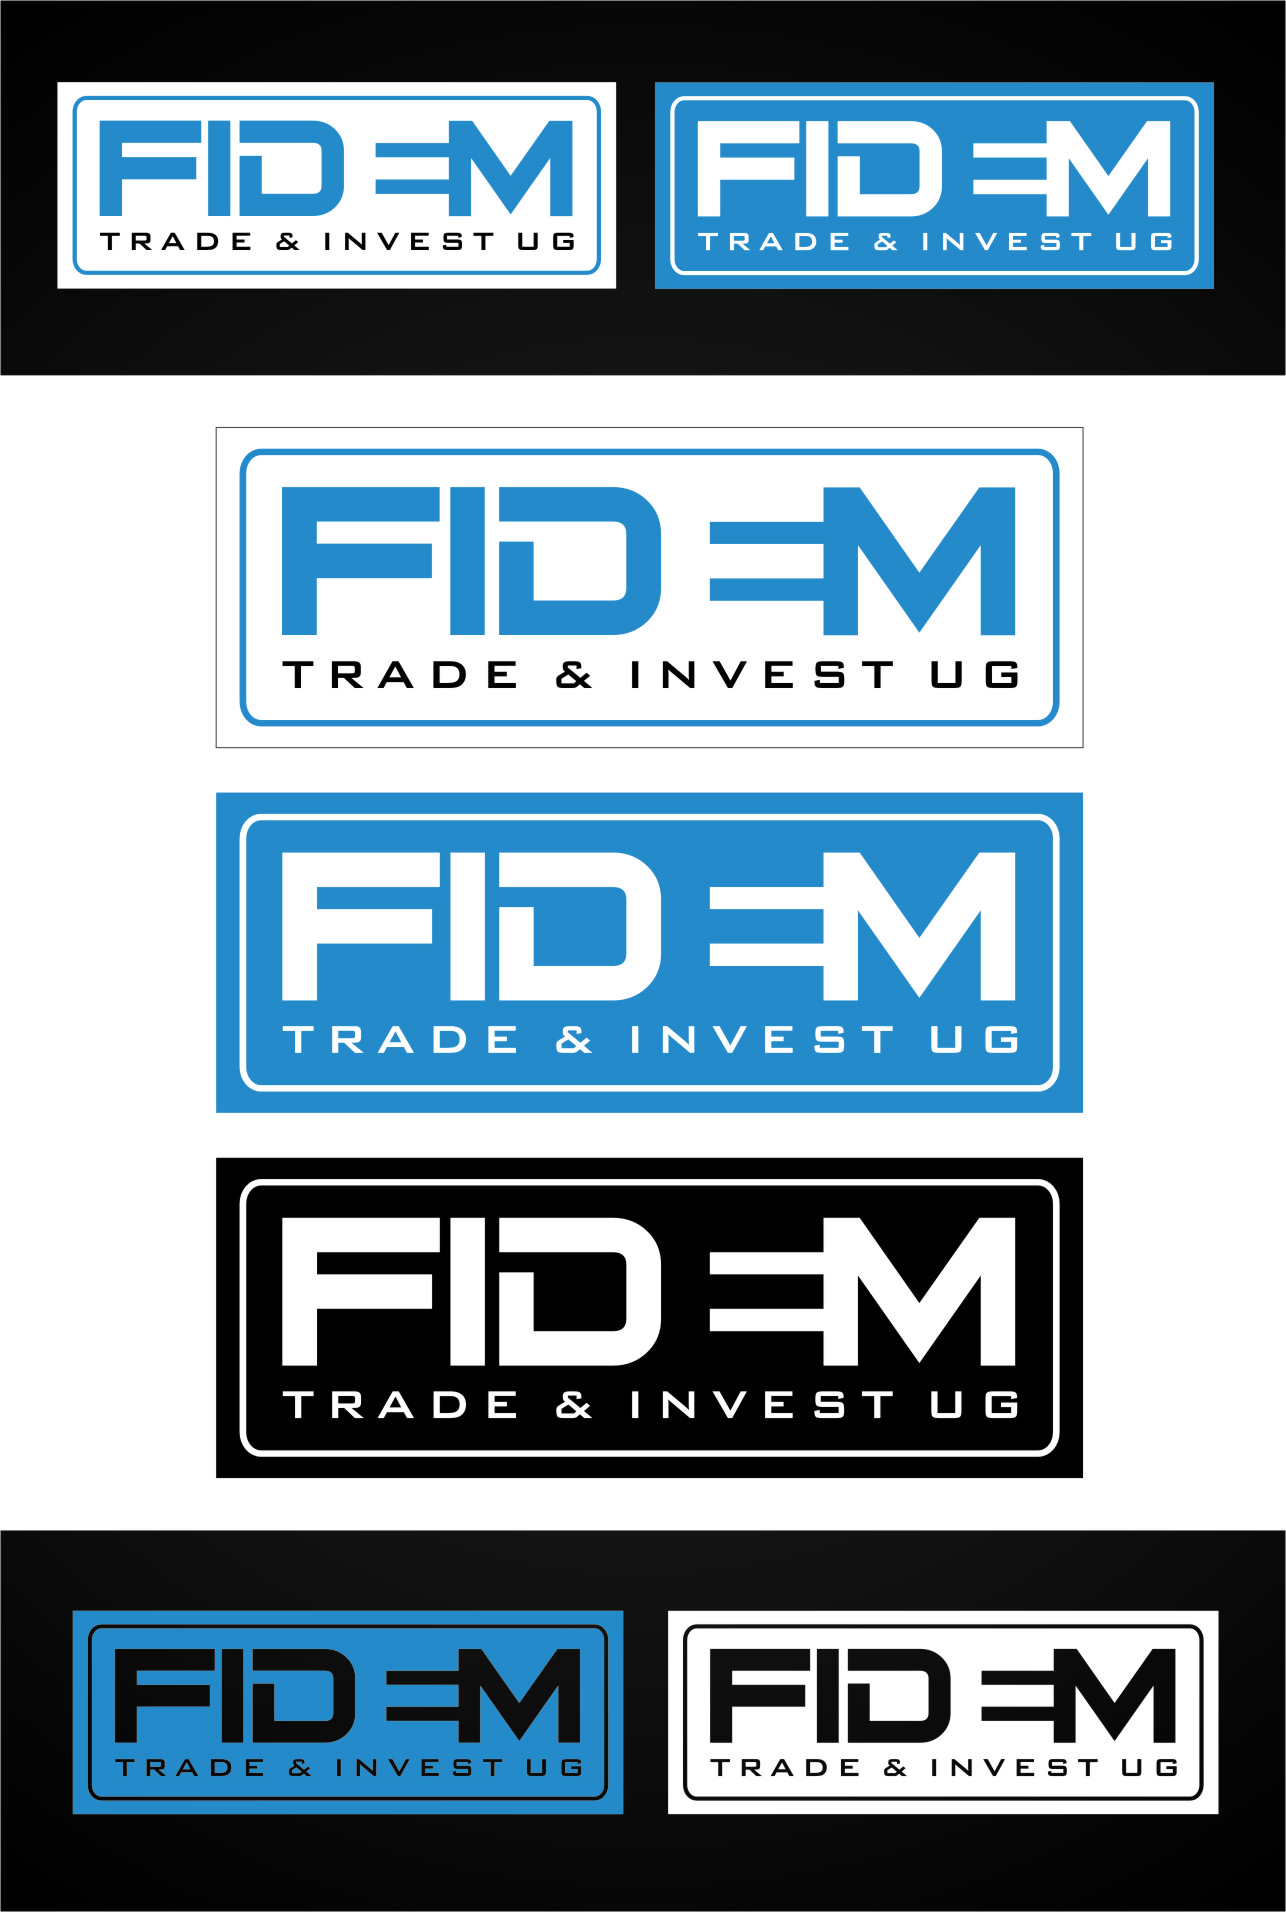 Logo Design by Ngepet_art - Entry No. 437 in the Logo Design Contest Professional Logo Design for FIDEM Trade & Invest UG.